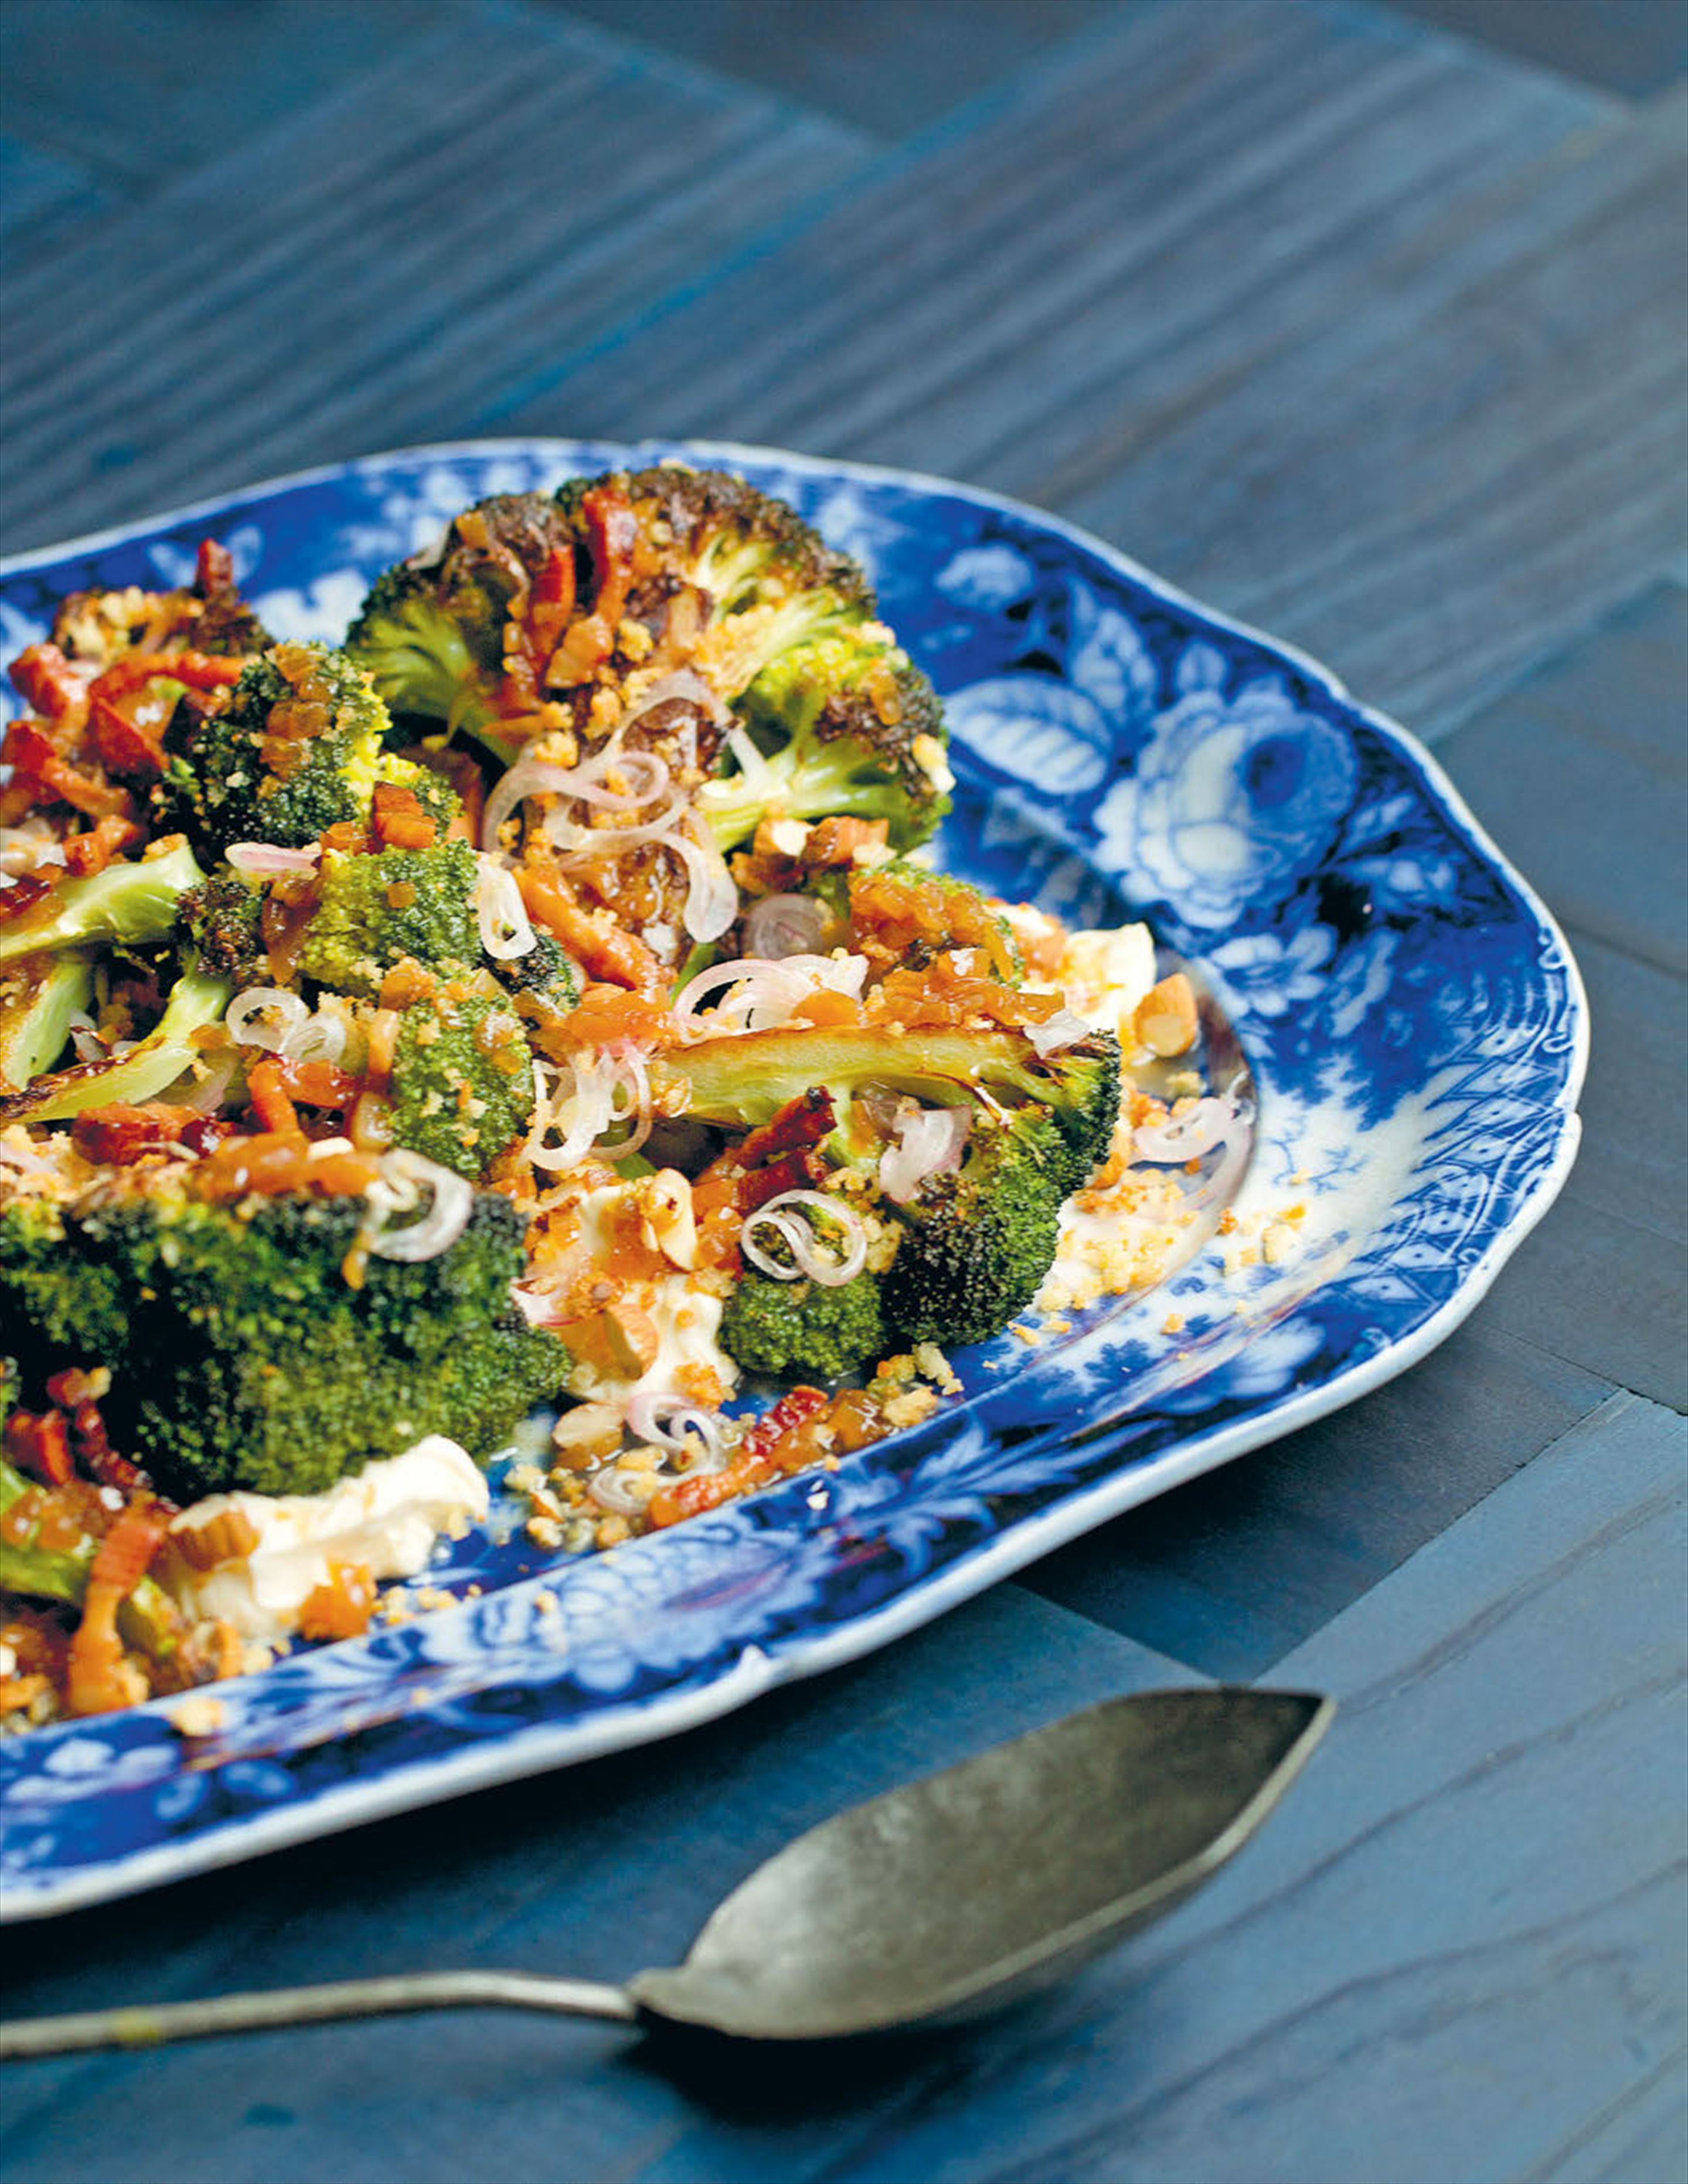 Baked broccoli with goat's curd, horseradish and bacon vinaigrette